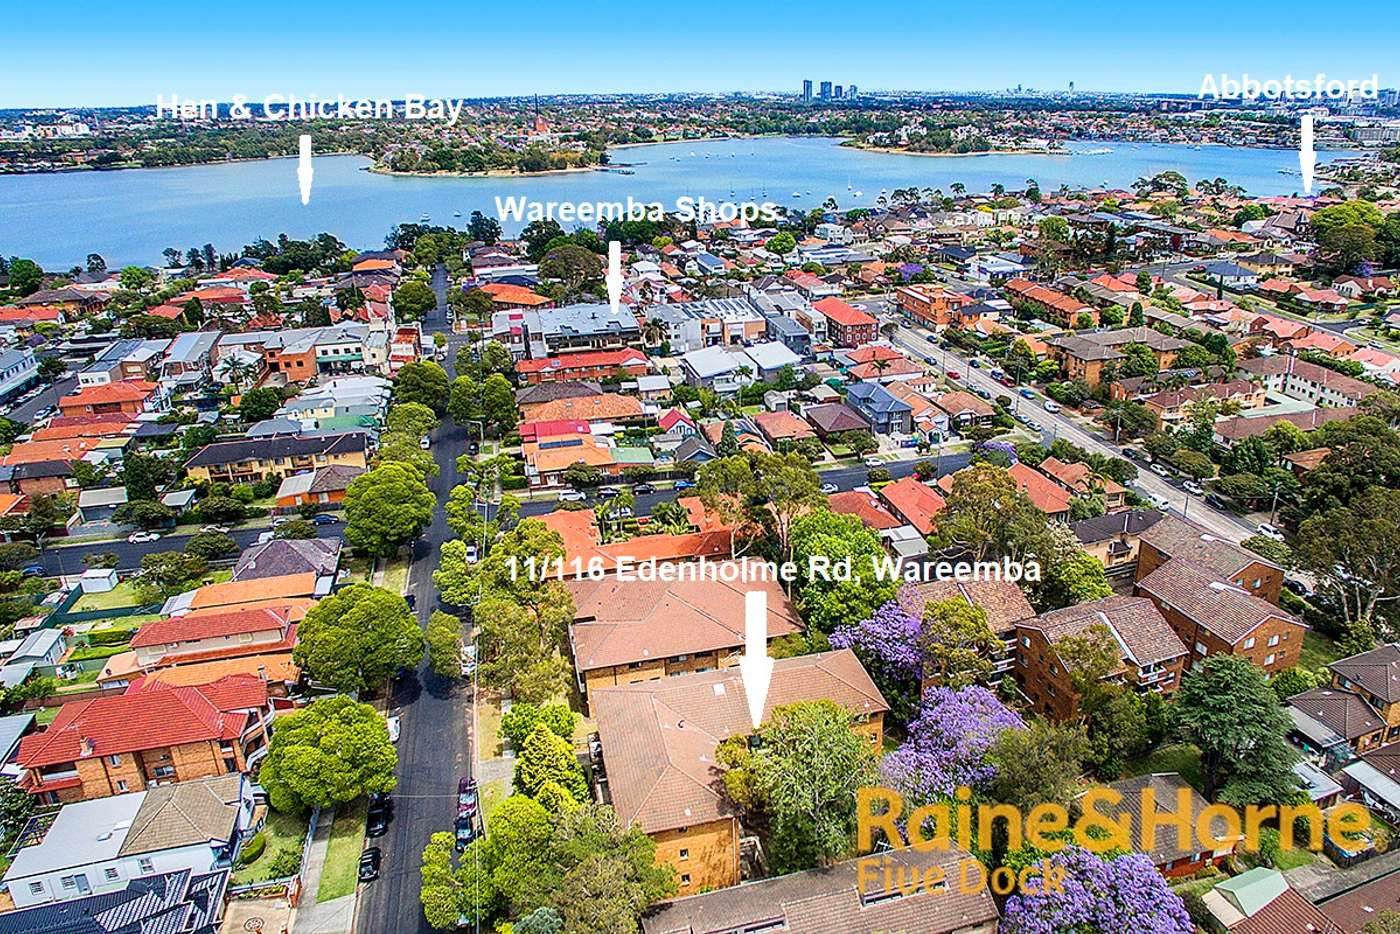 Main view of Homely apartment listing, 11/116 EDENHOLME ROAD, Wareemba NSW 2046